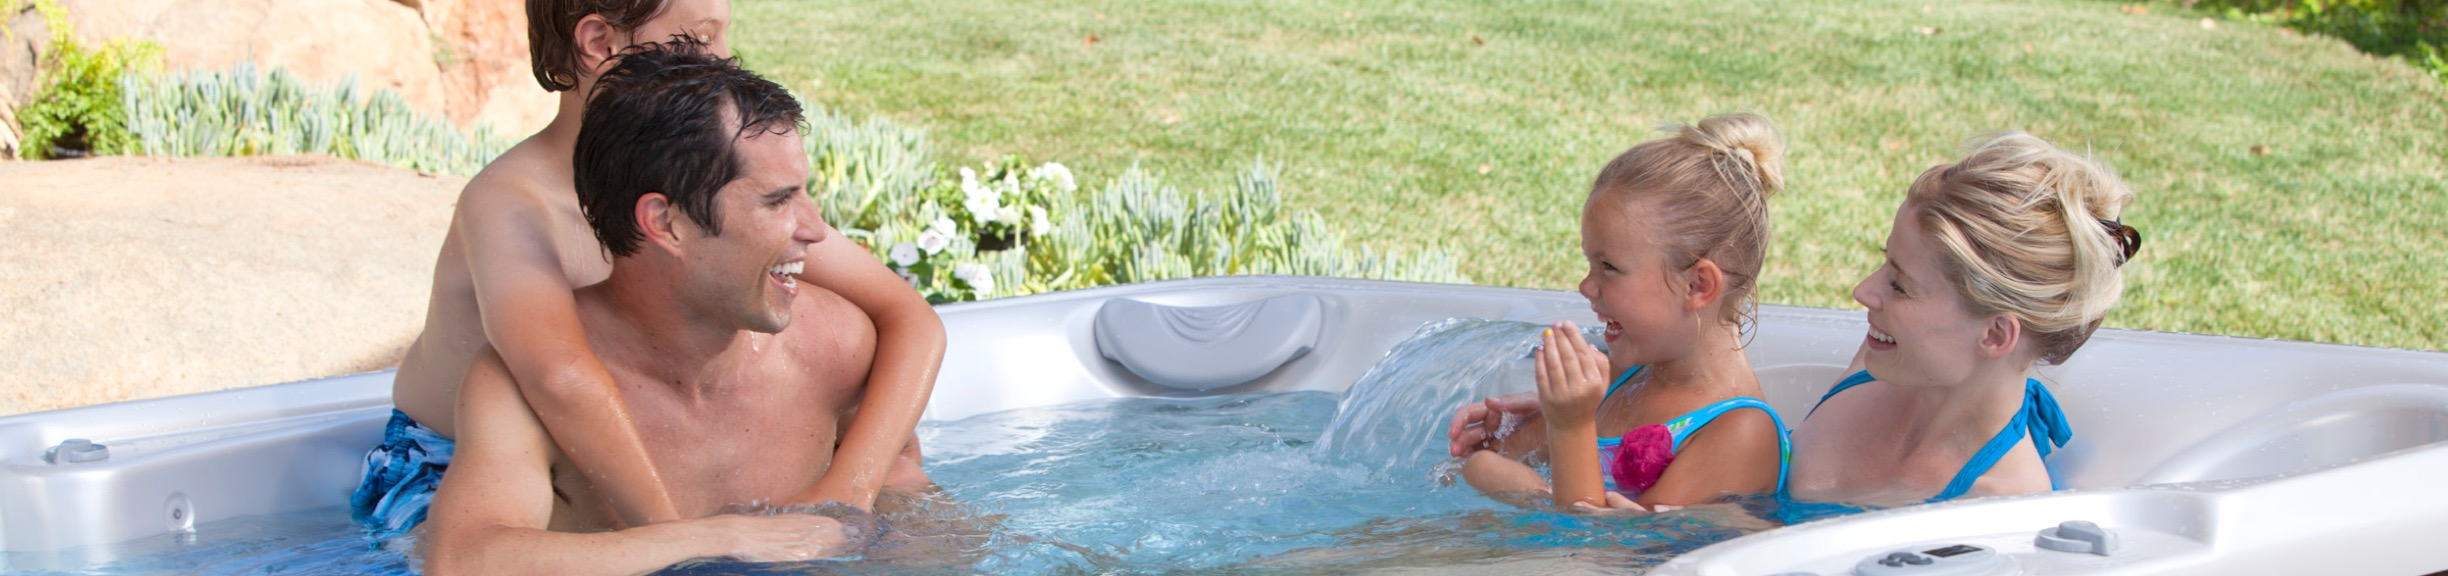 Maximize Outdoor Space with a Home Hot Tub, Spa Store Near Wentzville